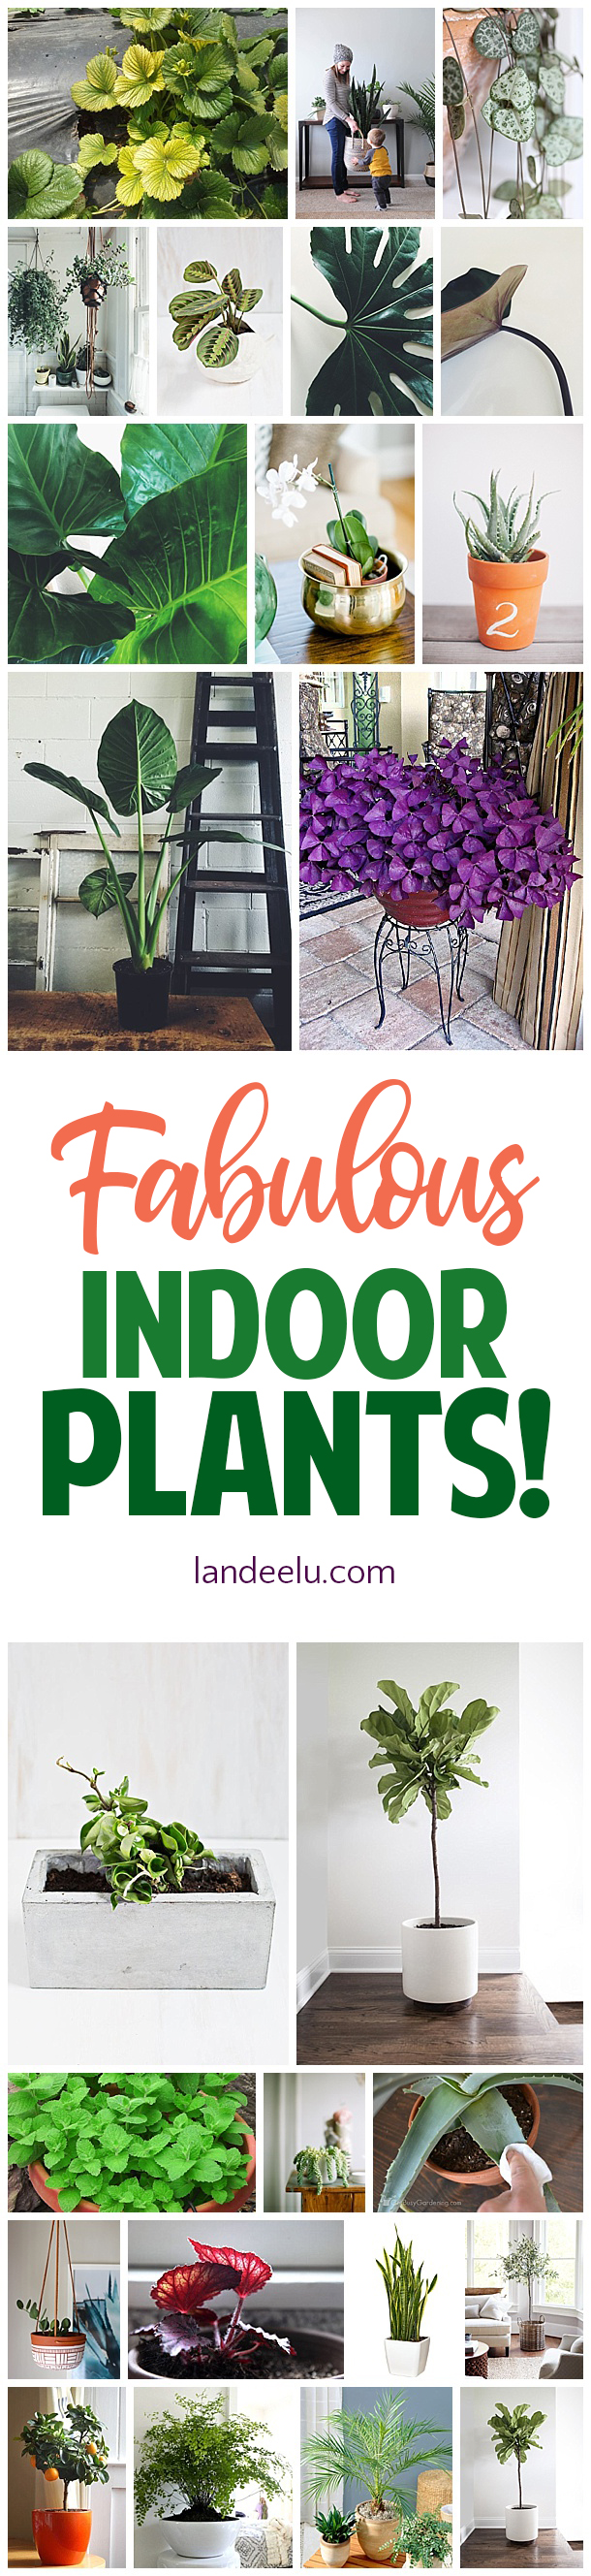 Great suggestions for the best indoor plants for the home! #plantlady #indoorplants #bestplants #plants #greenthumb